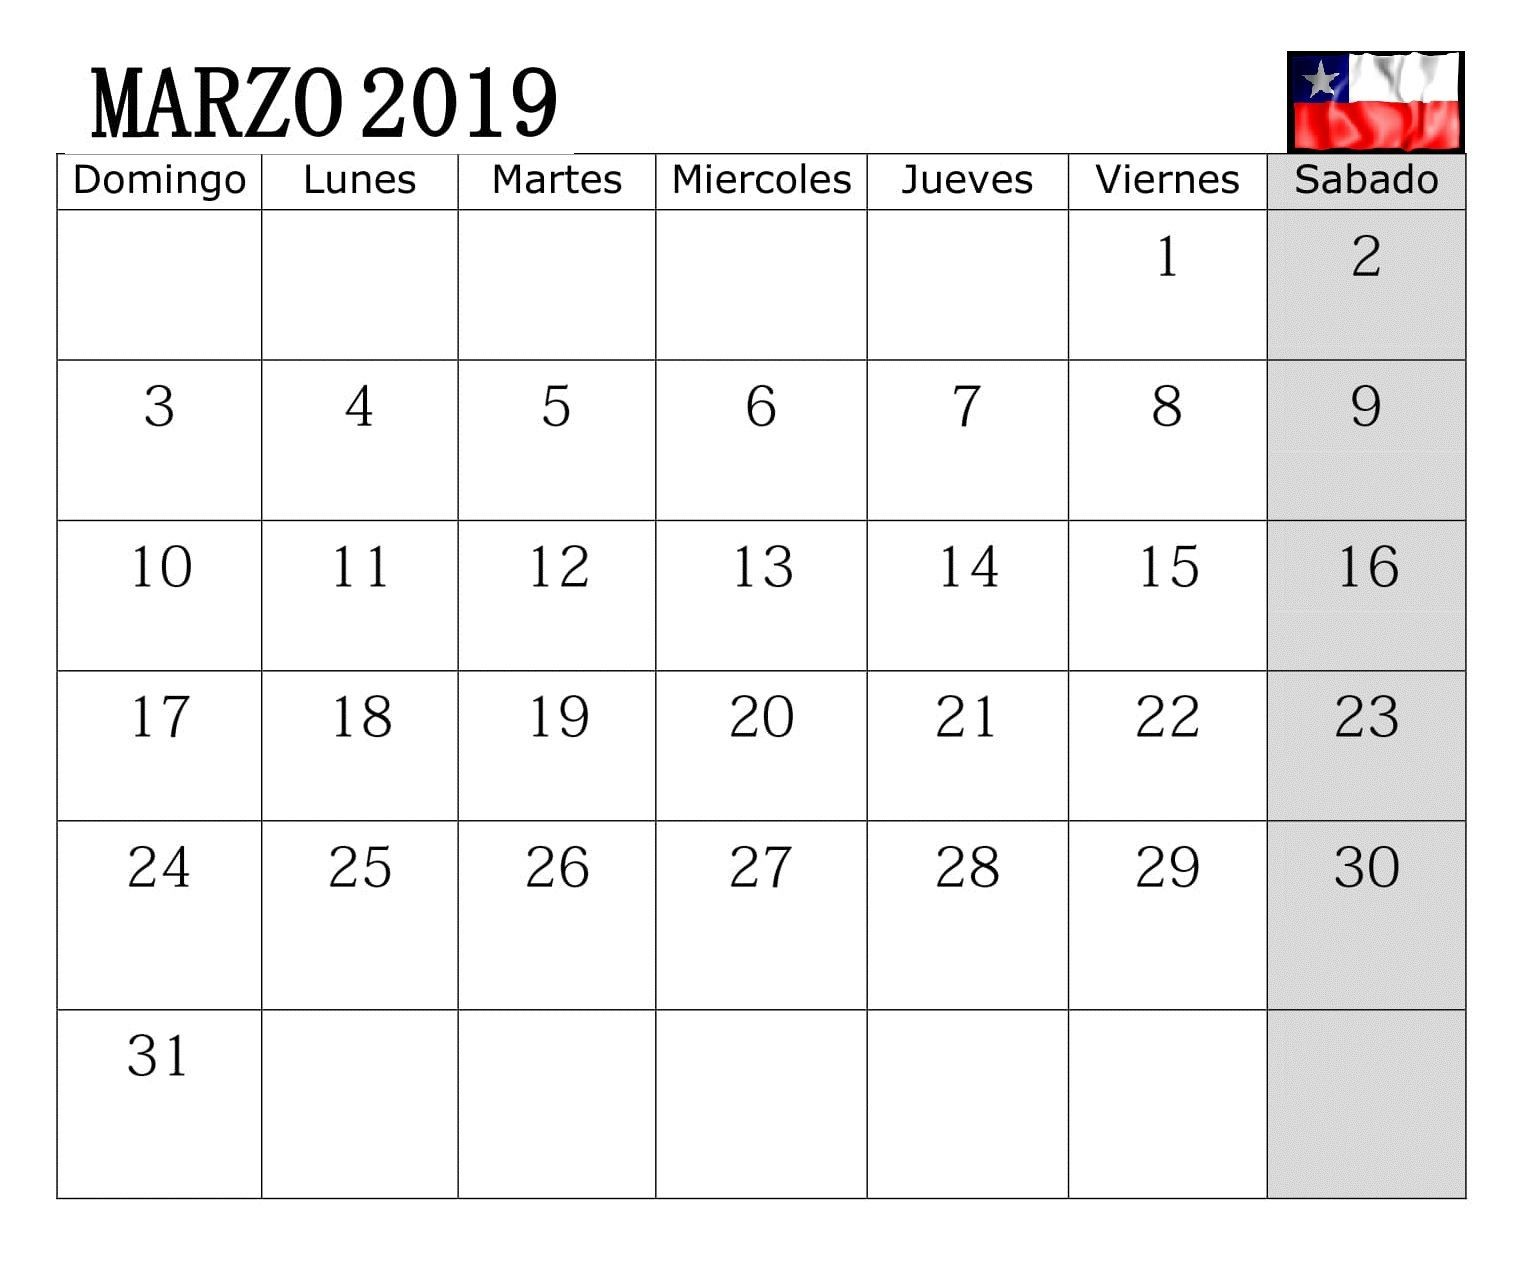 Calendario Enero 2019 Para Imprimir A4 Más Recientes 100 Best Calendario Marzo 2019 Images In 2019 Of Calendario Enero 2019 Para Imprimir A4 Actual Calendario Diciembre De 2019 53ld Calendario T